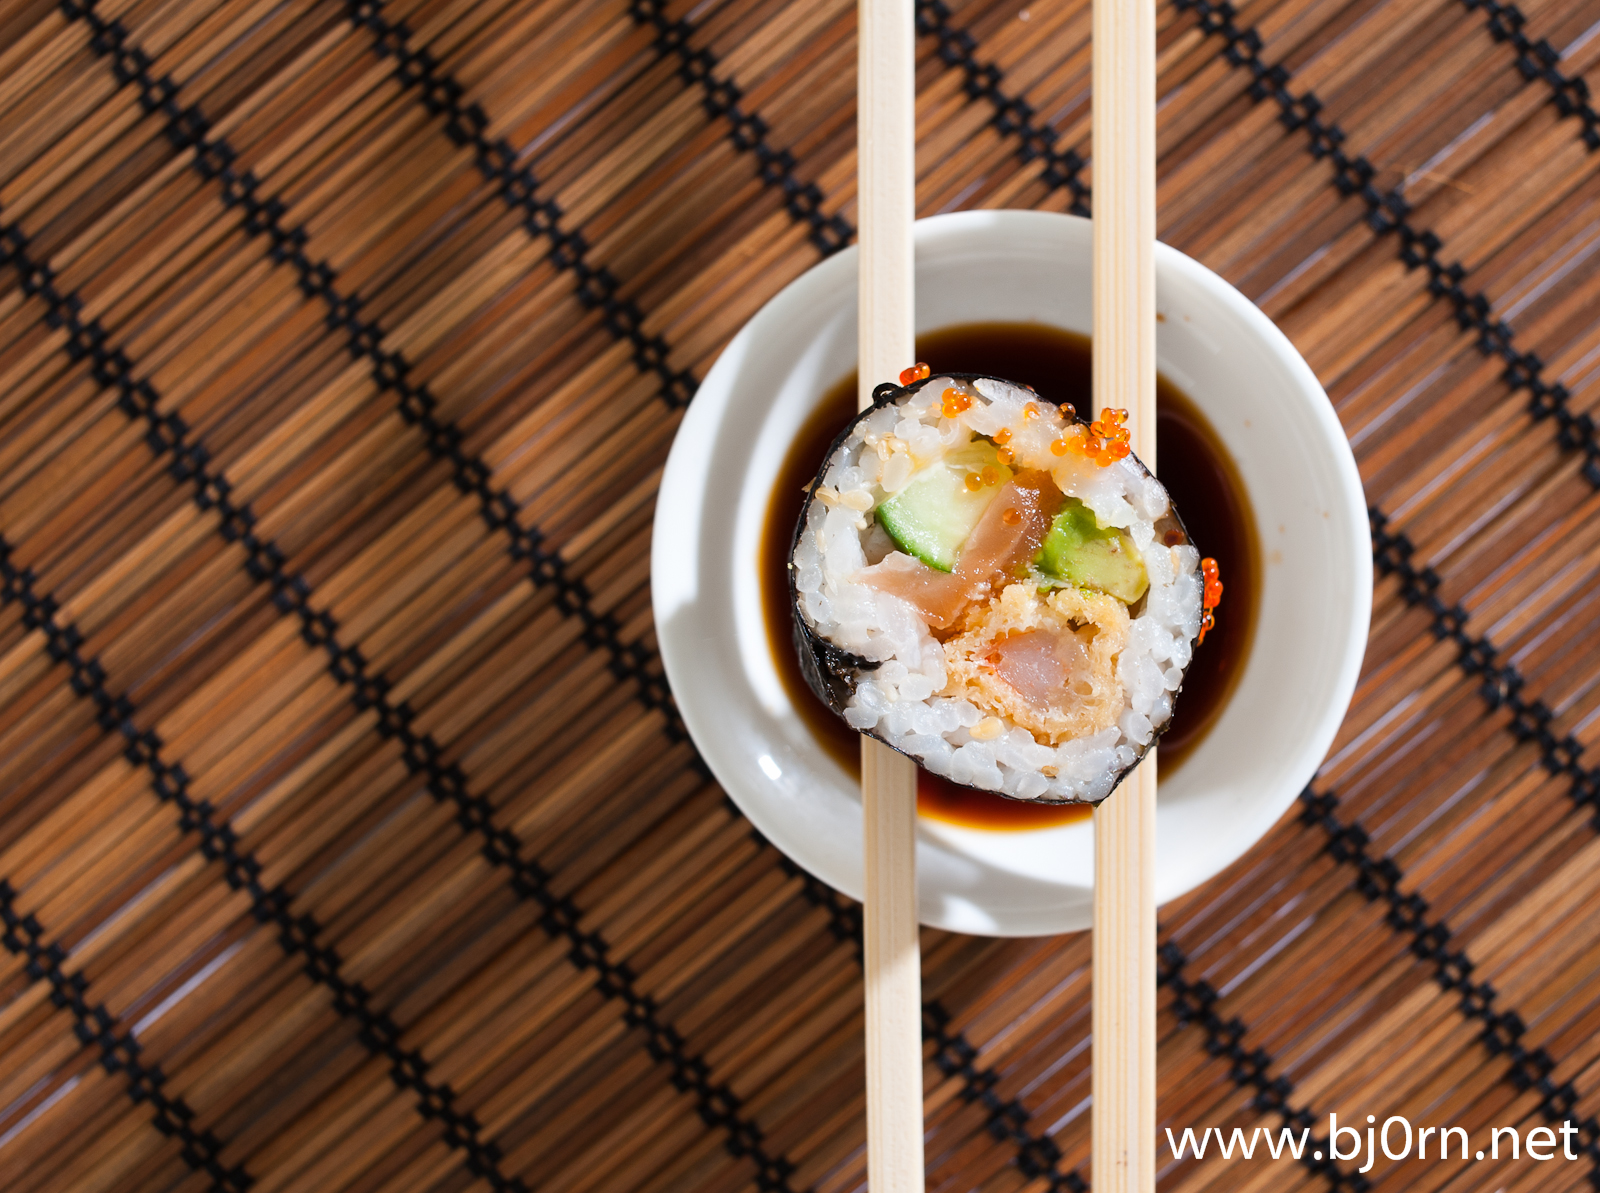 photo: Bjørn Christiansen, Sushi from Rema 1000 (Bryggen Asian Cooking)